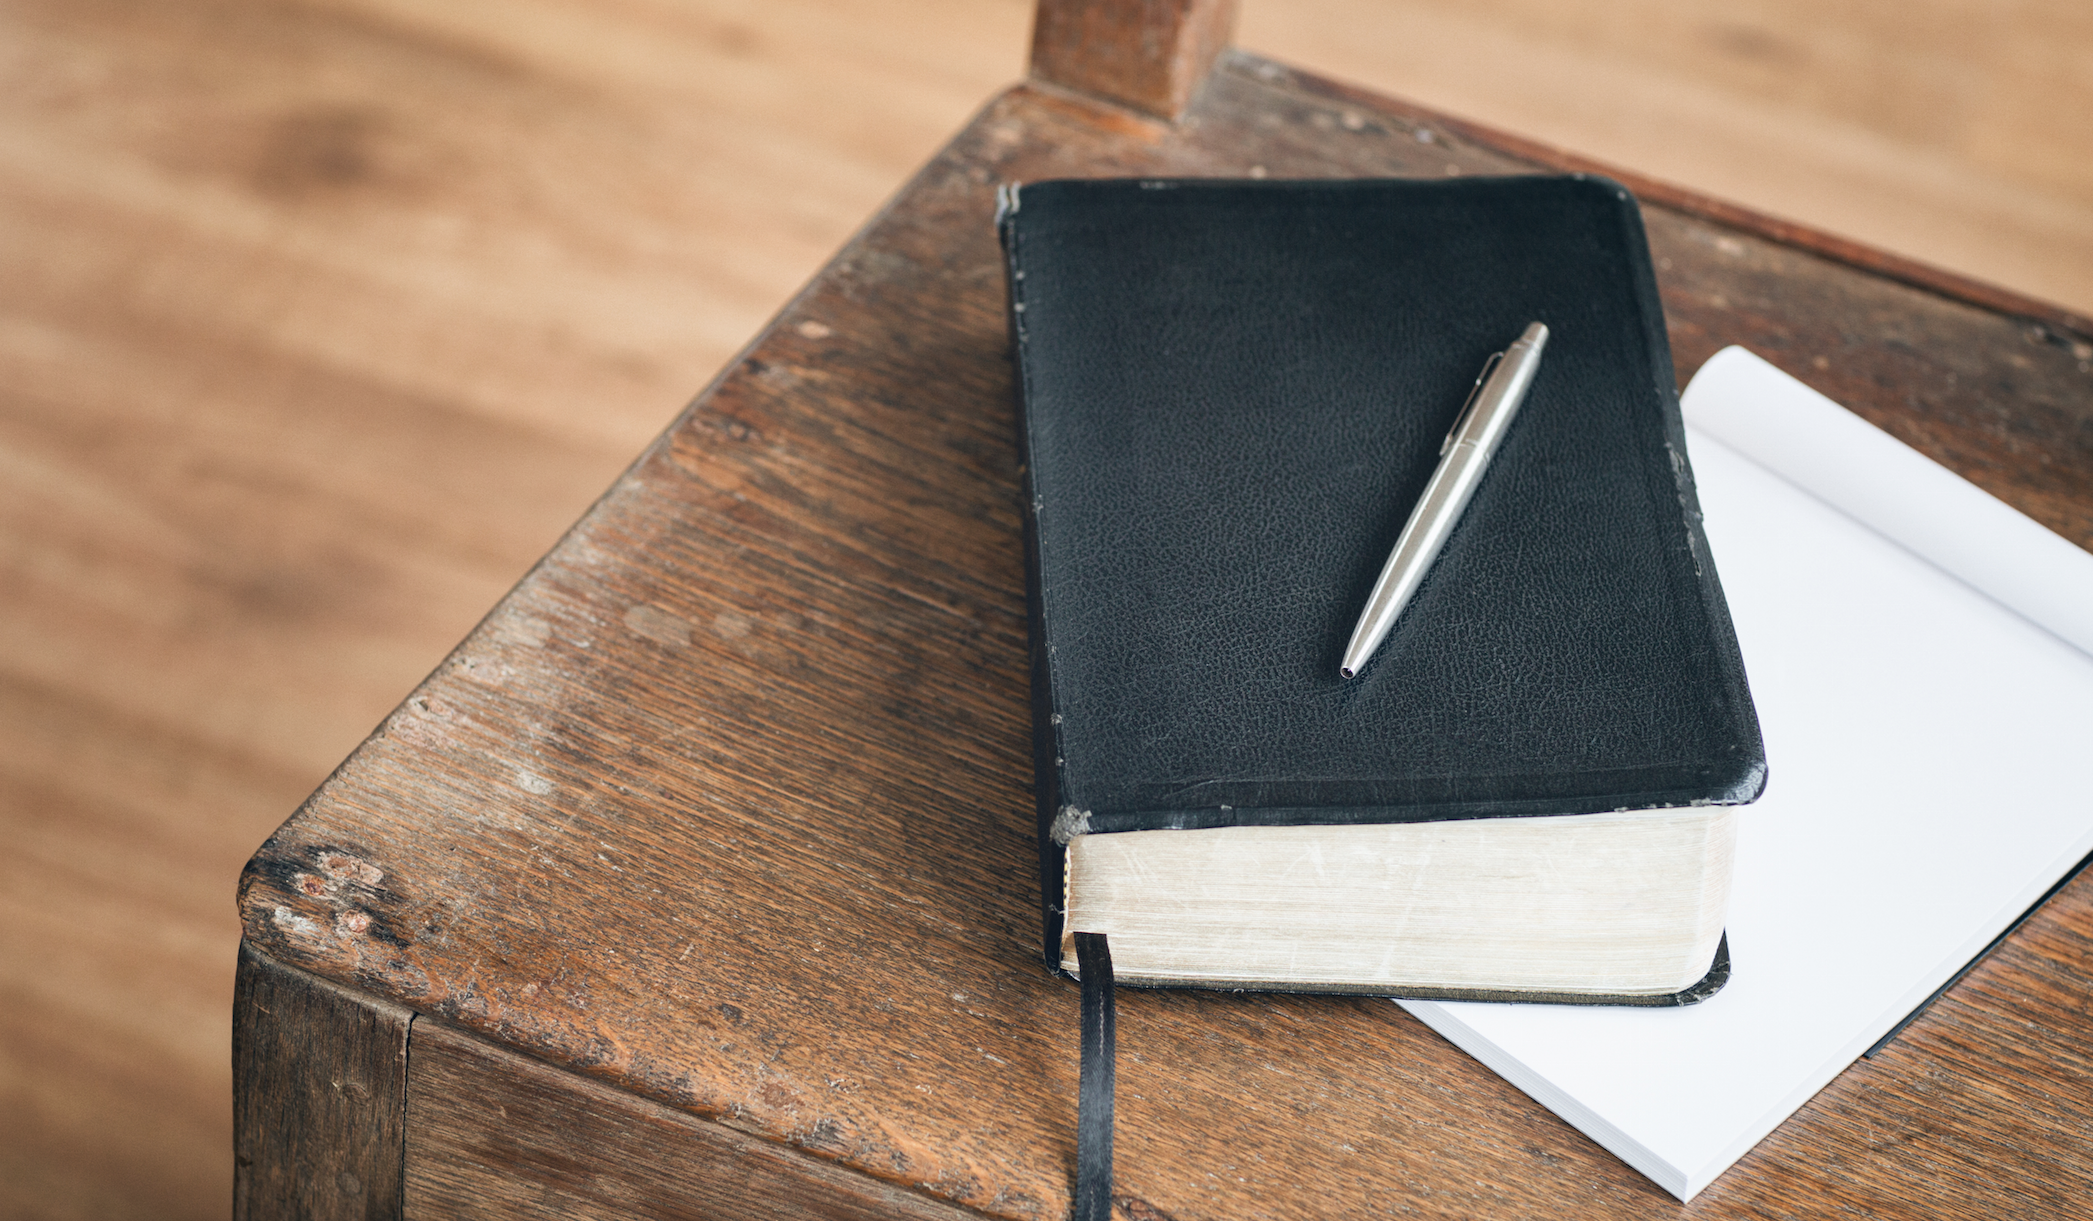 Why Our Children Need To Know Scripture